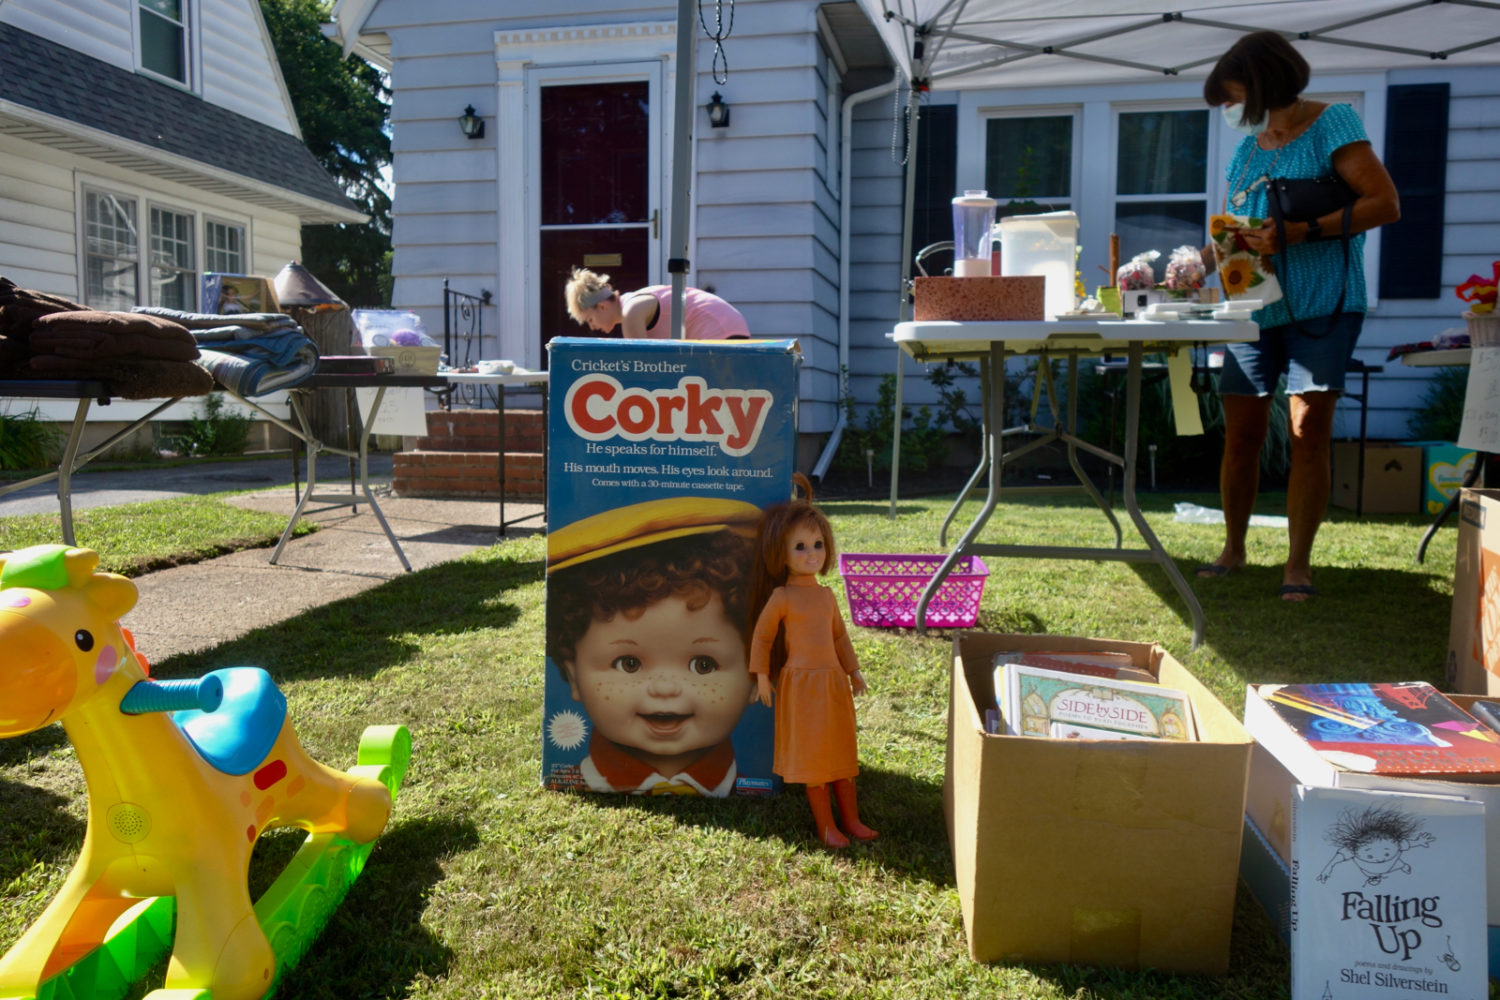 Corky doll at garage sale during the pandemic